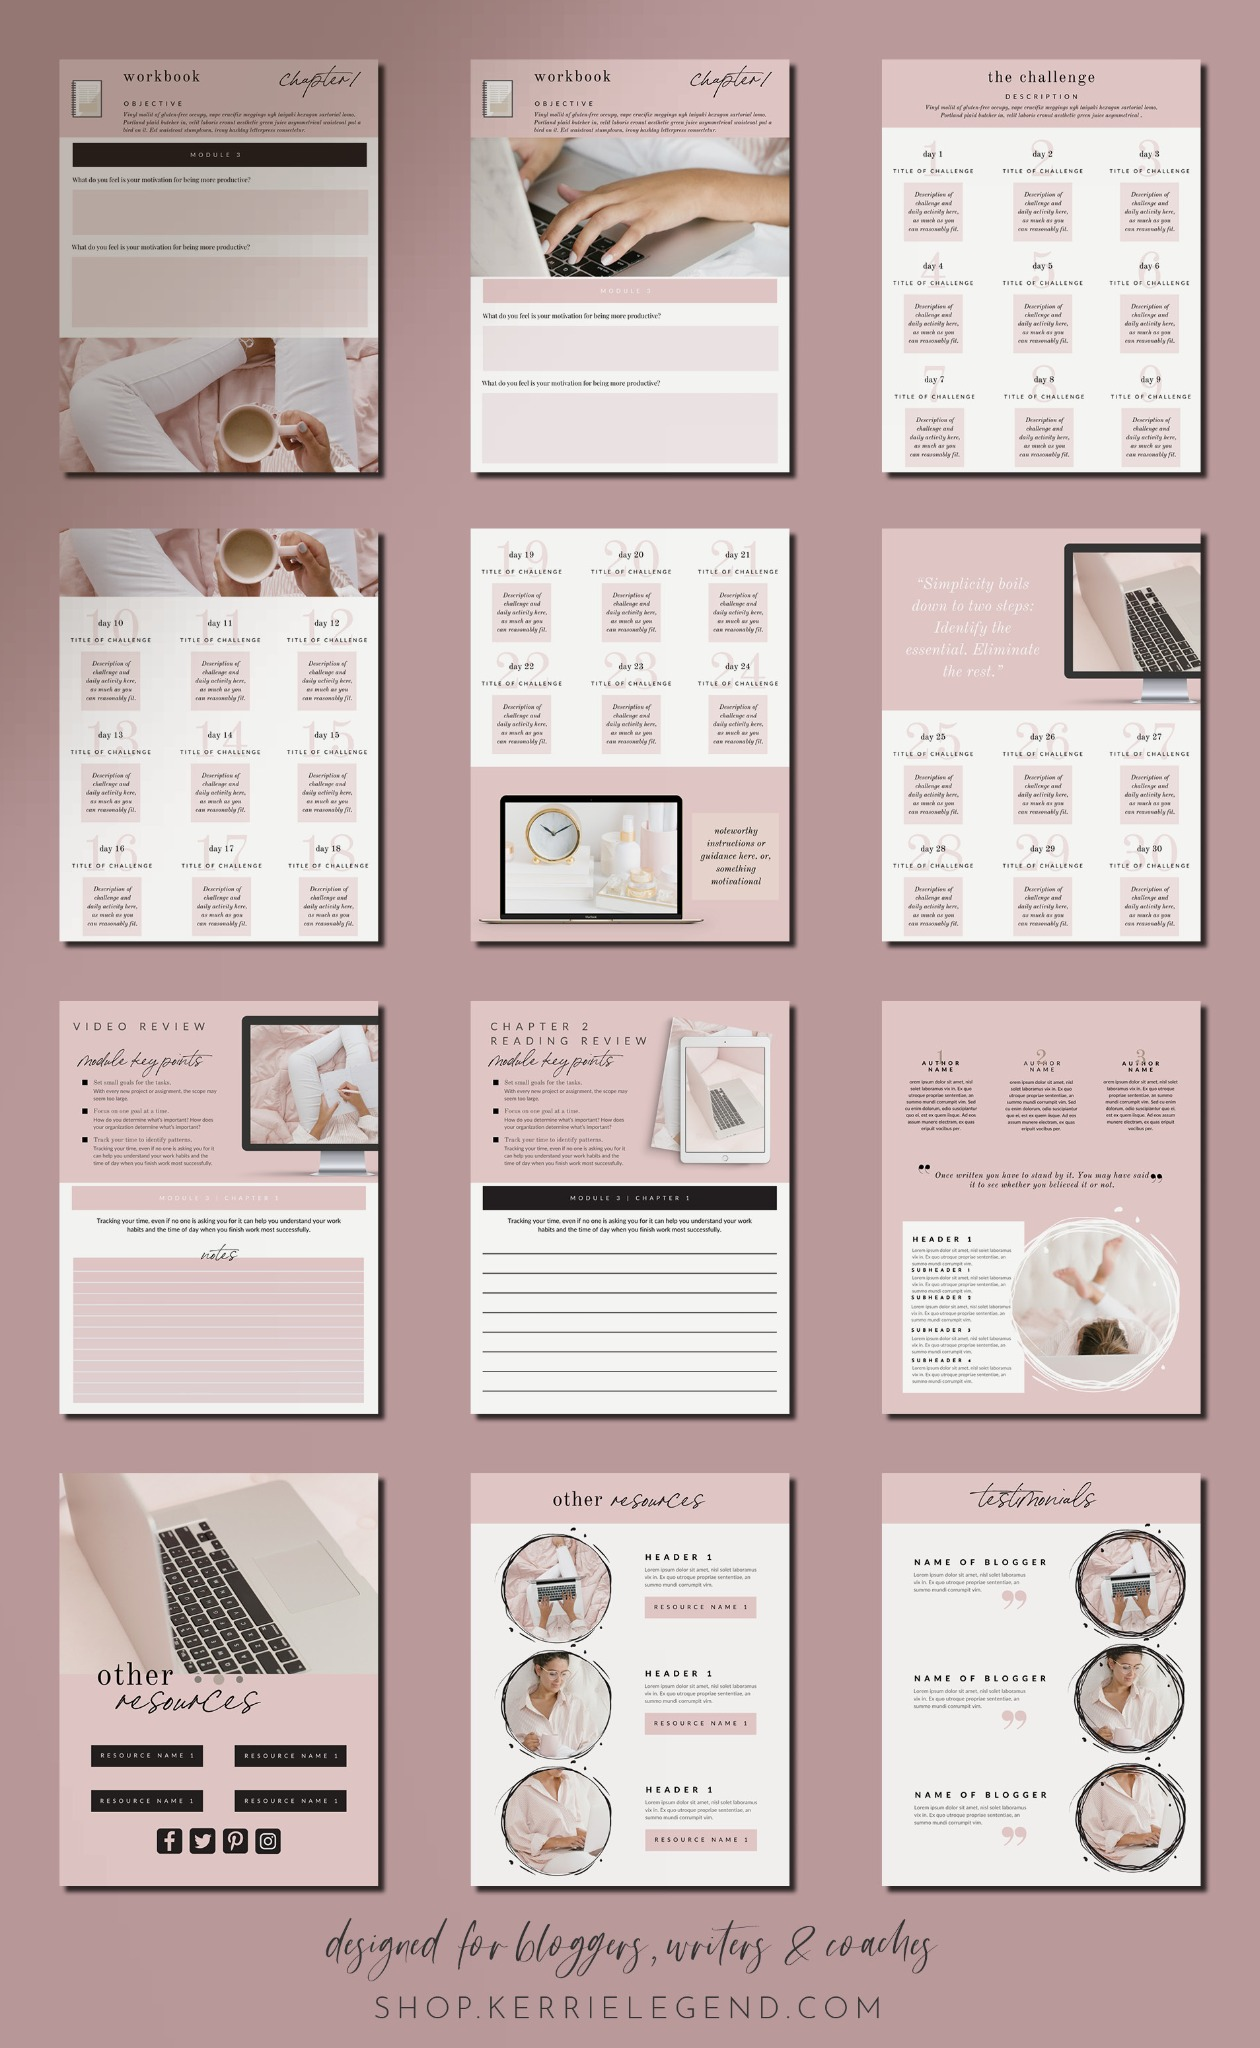 80-Page eBook & Workbook Canva Template for Bloggers, Writers, Coaches - Blush